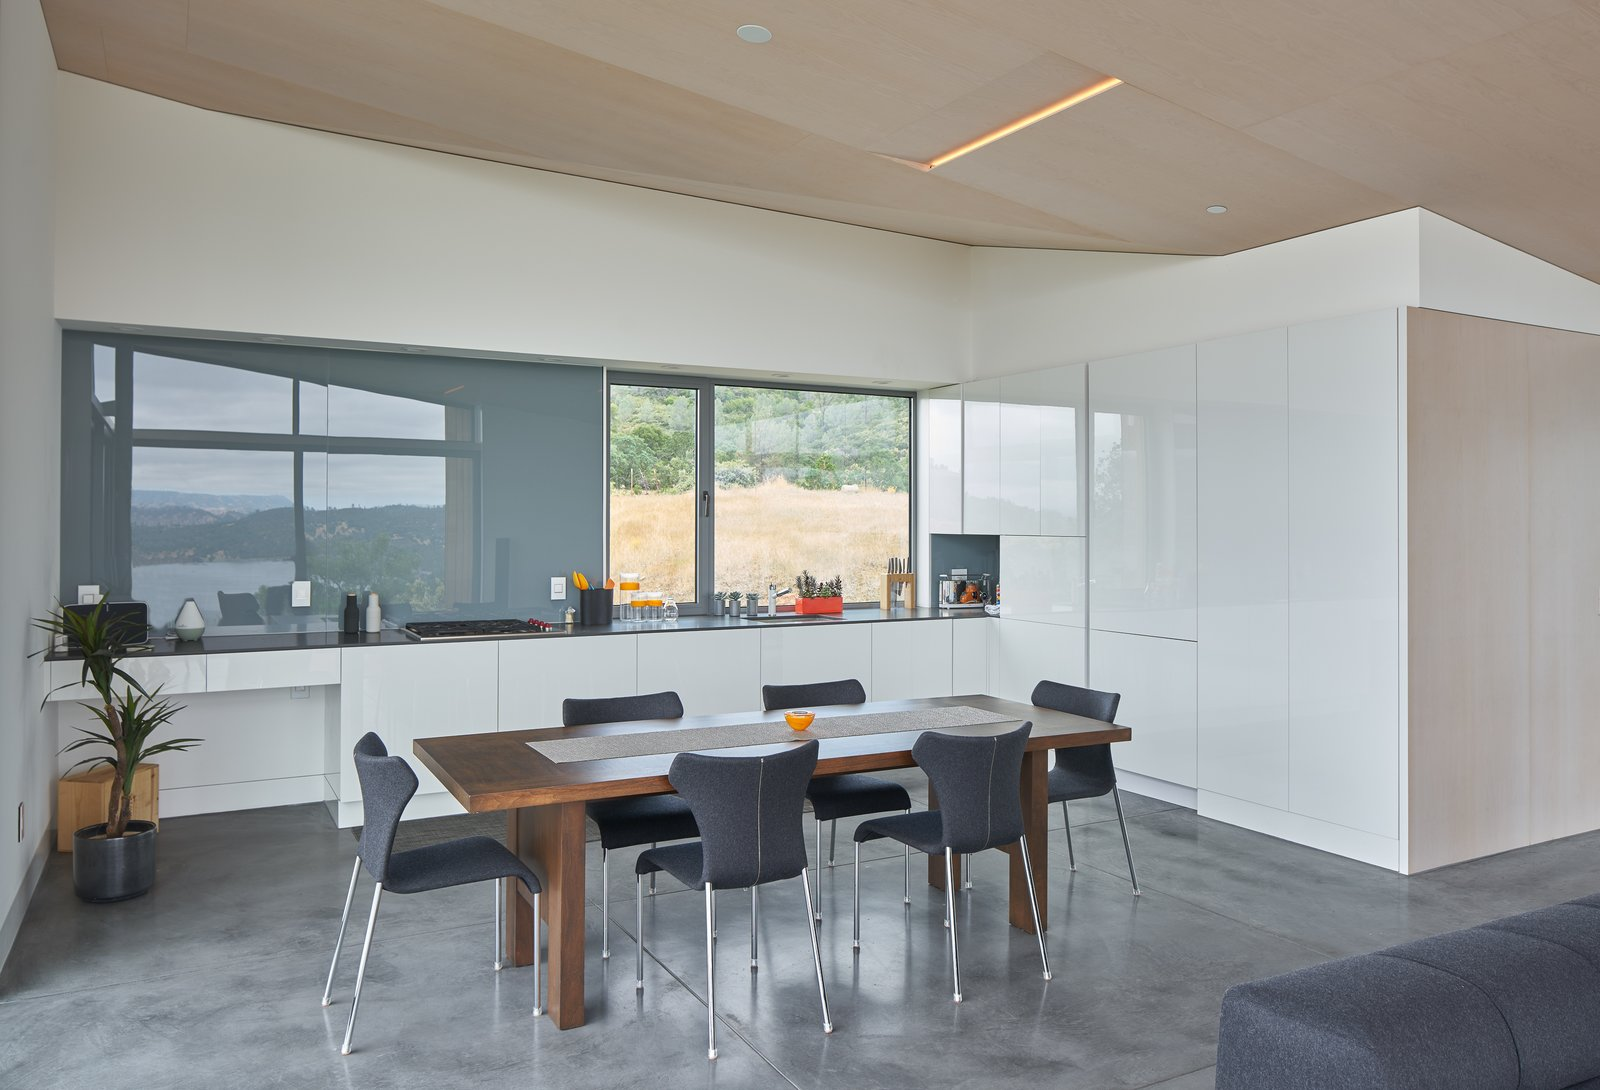 interior, kitchen Tagged: Kitchen, White Cabinet, and Recessed Lighting. Lake Berryessa Custom Home by Centric General Contractors